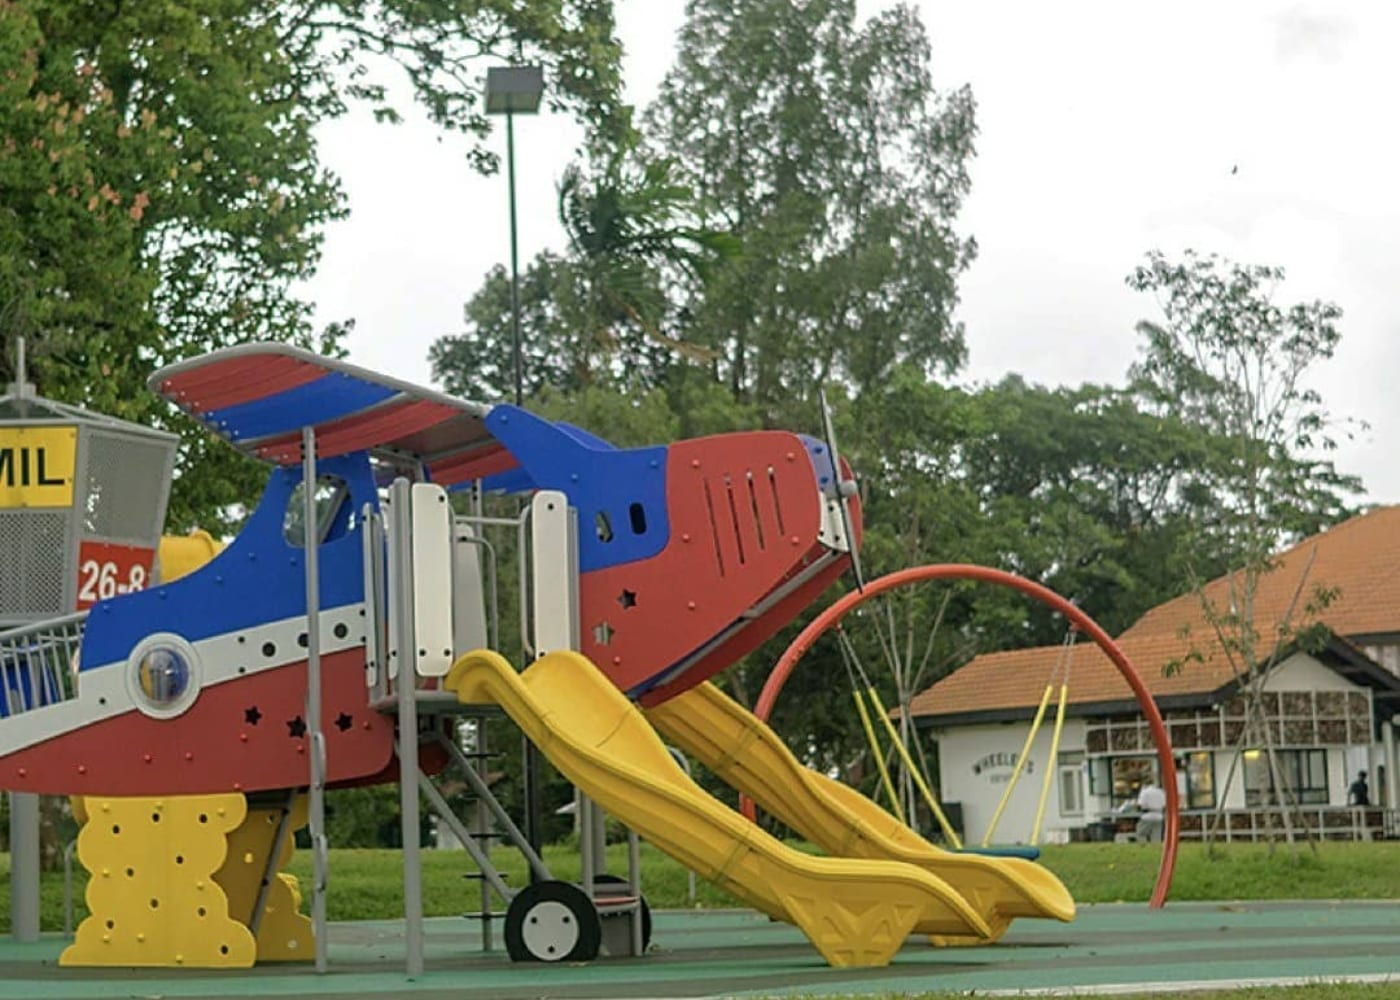 Seletar Aeorspace Park | Best playgrounds and parks in Singapore for kids of all ages